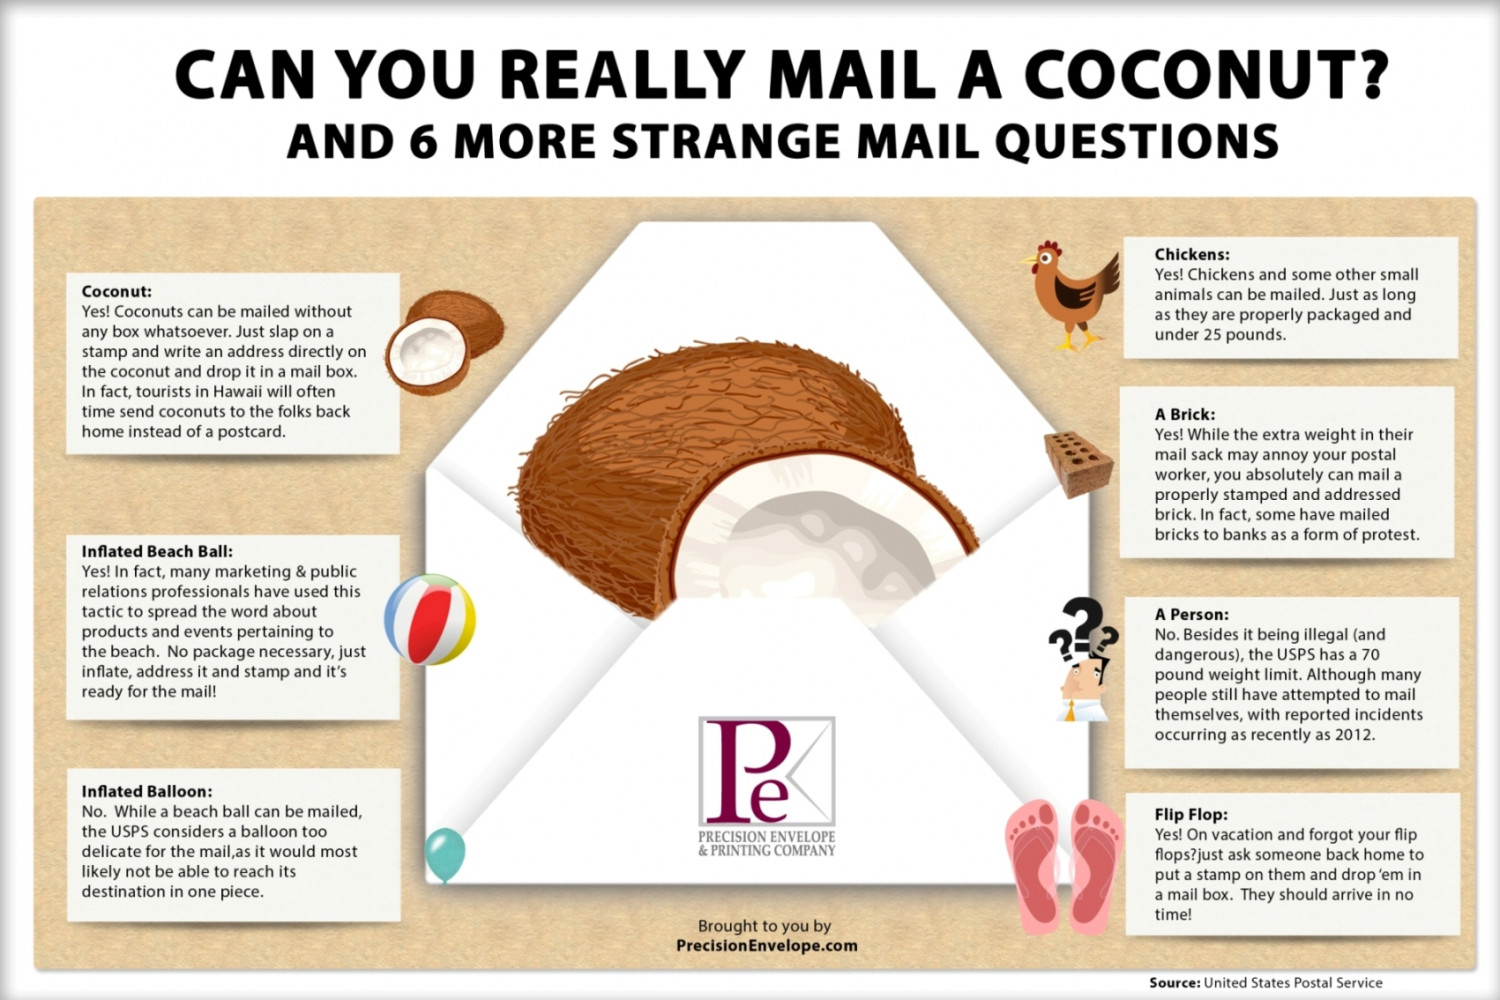 Can You Really Mail a Coconut? And 6 More Strange Mail Questions Infographic